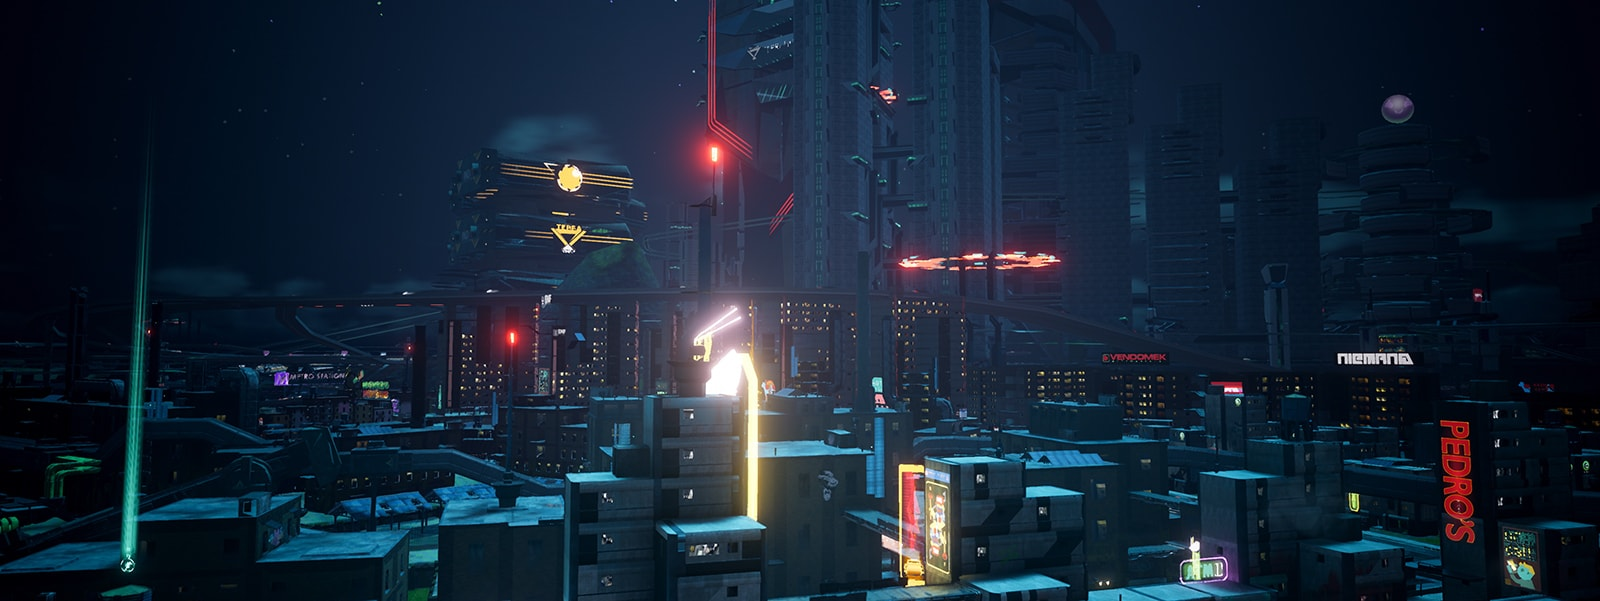 Crackdown 3 screenshot without HDR